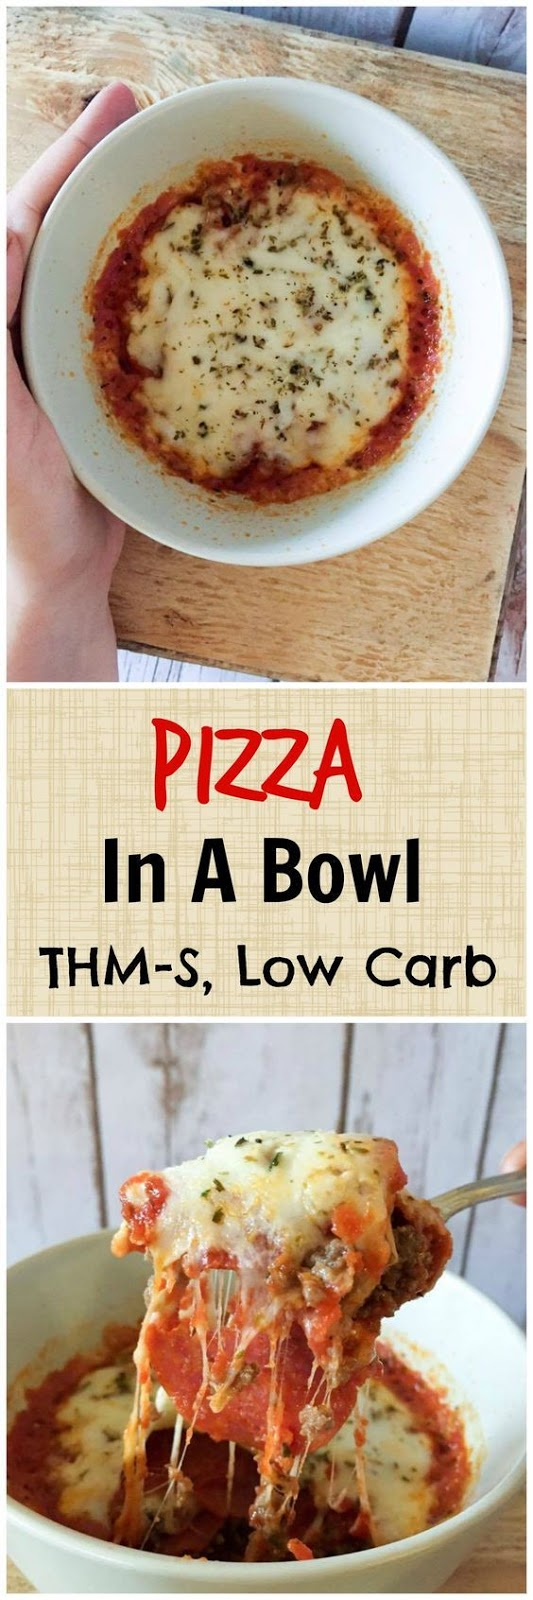 Pizza in a Bowl